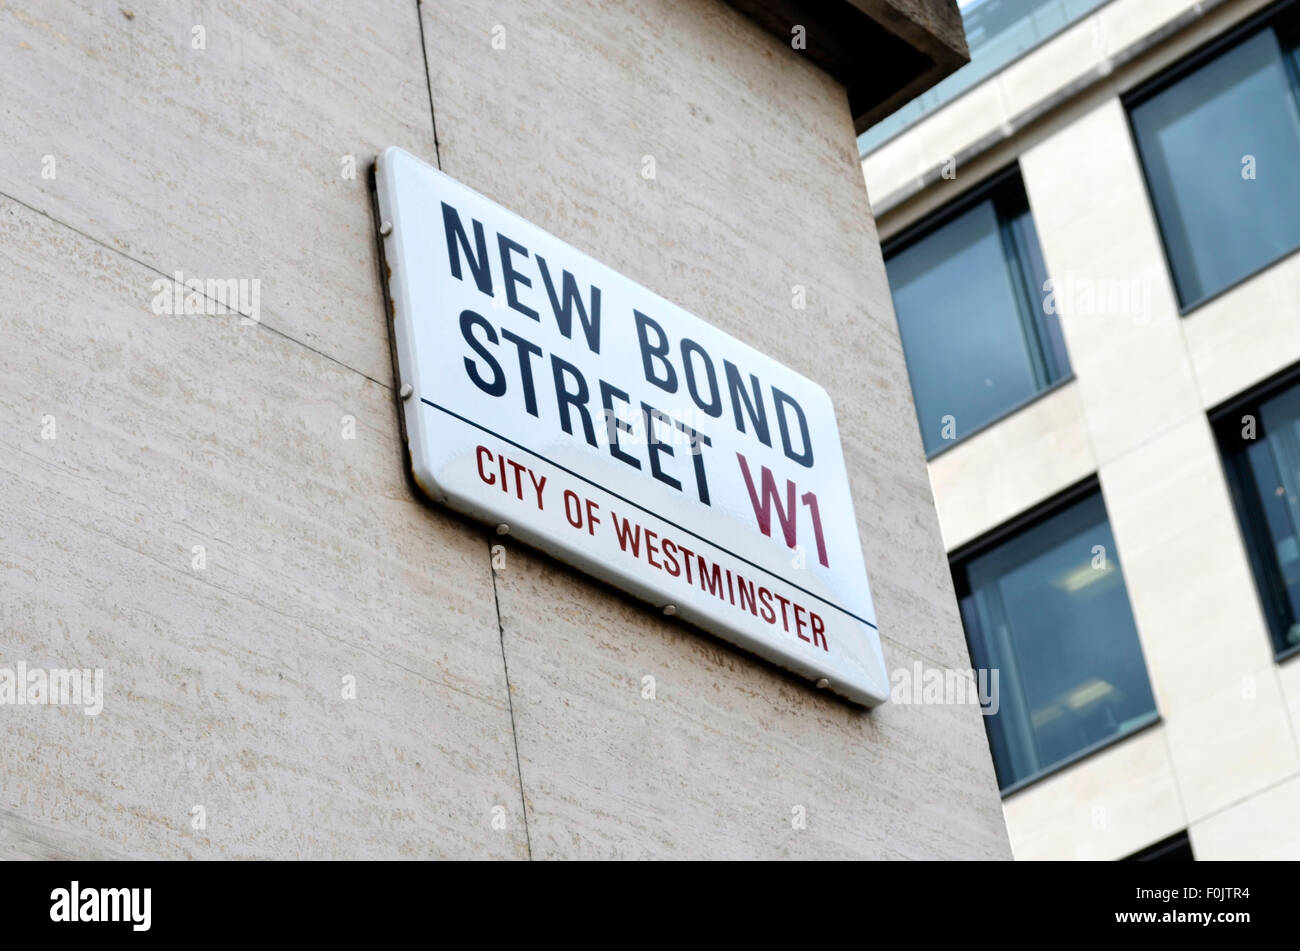 New Bond Street sign City of Westminster - Stock Image